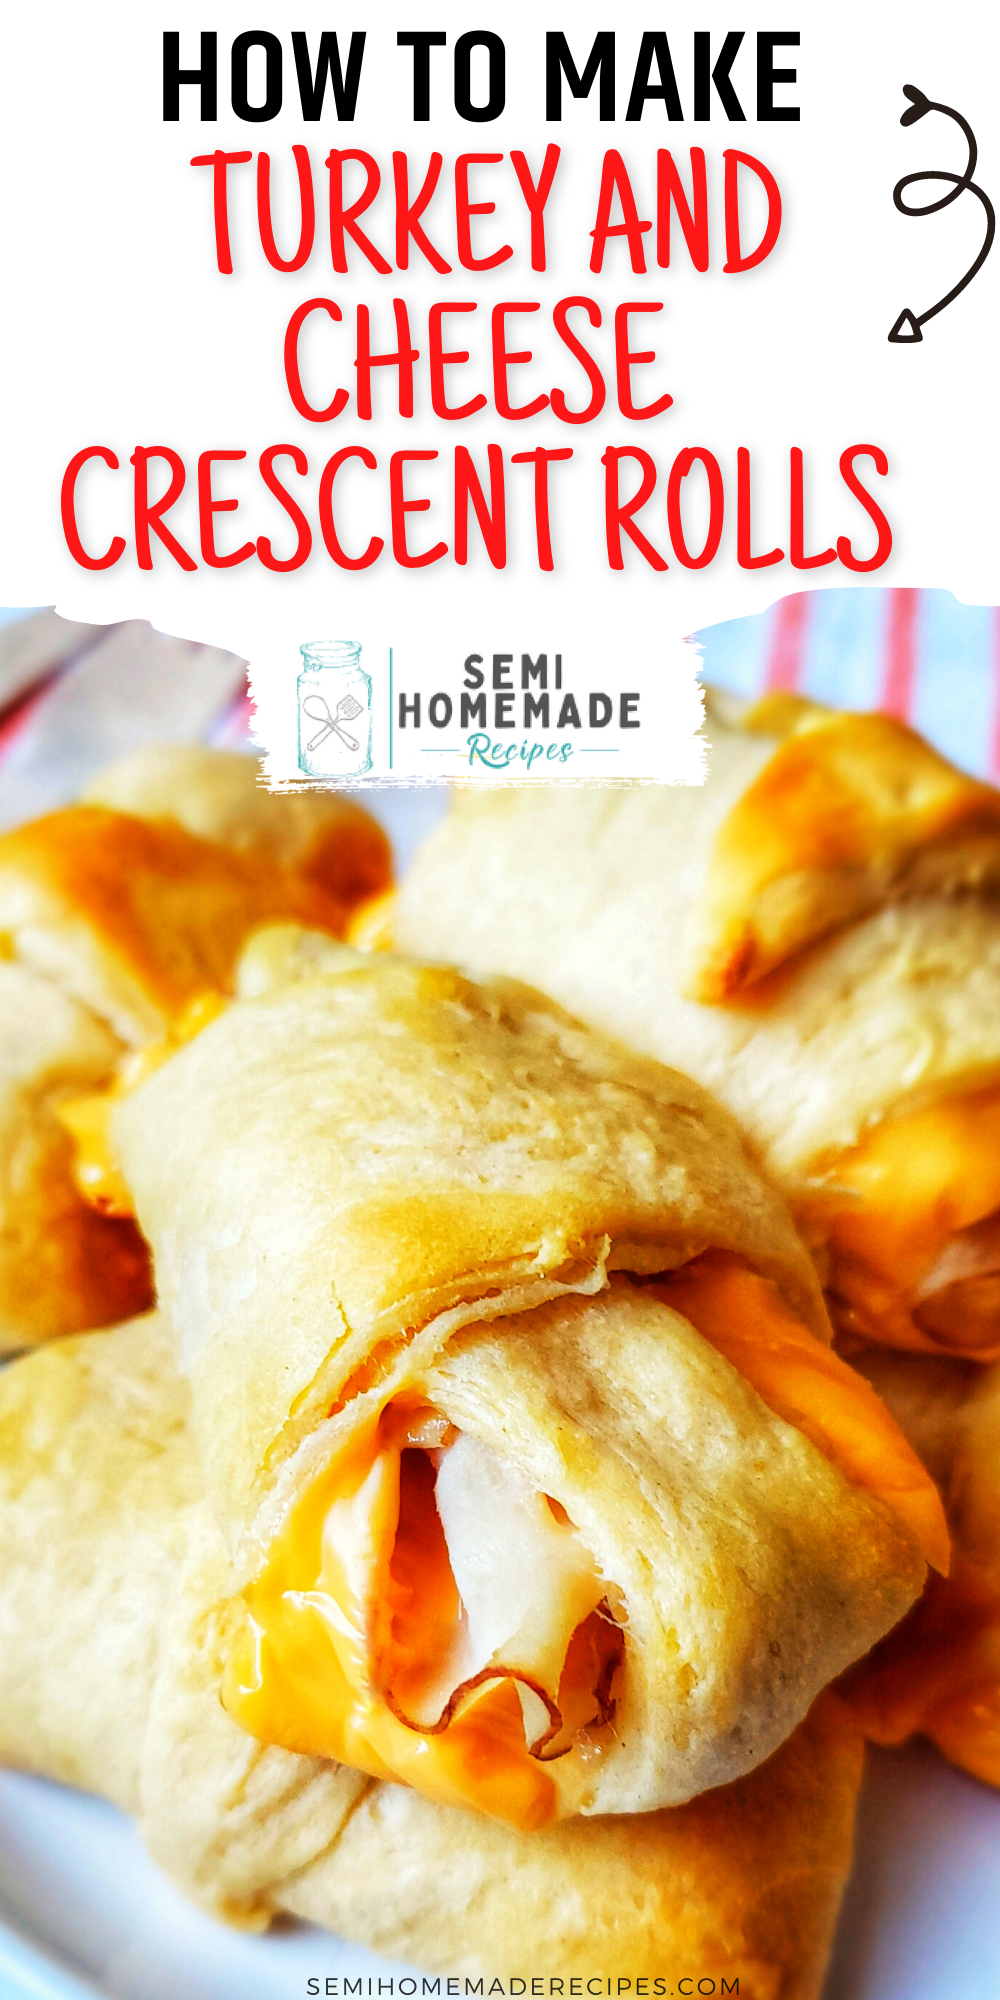 Turkey and Cheese Crescent Rolls - Thin slices of turkey and slices of cheese are rolled into crescent roll dough and baked for the perfect lunch or snack! You can also use shredded cheese for these rolls! I also love using sliced ham, rotisserie chicken, and leftover Thanksgiving turkey for these little sandwiches too!